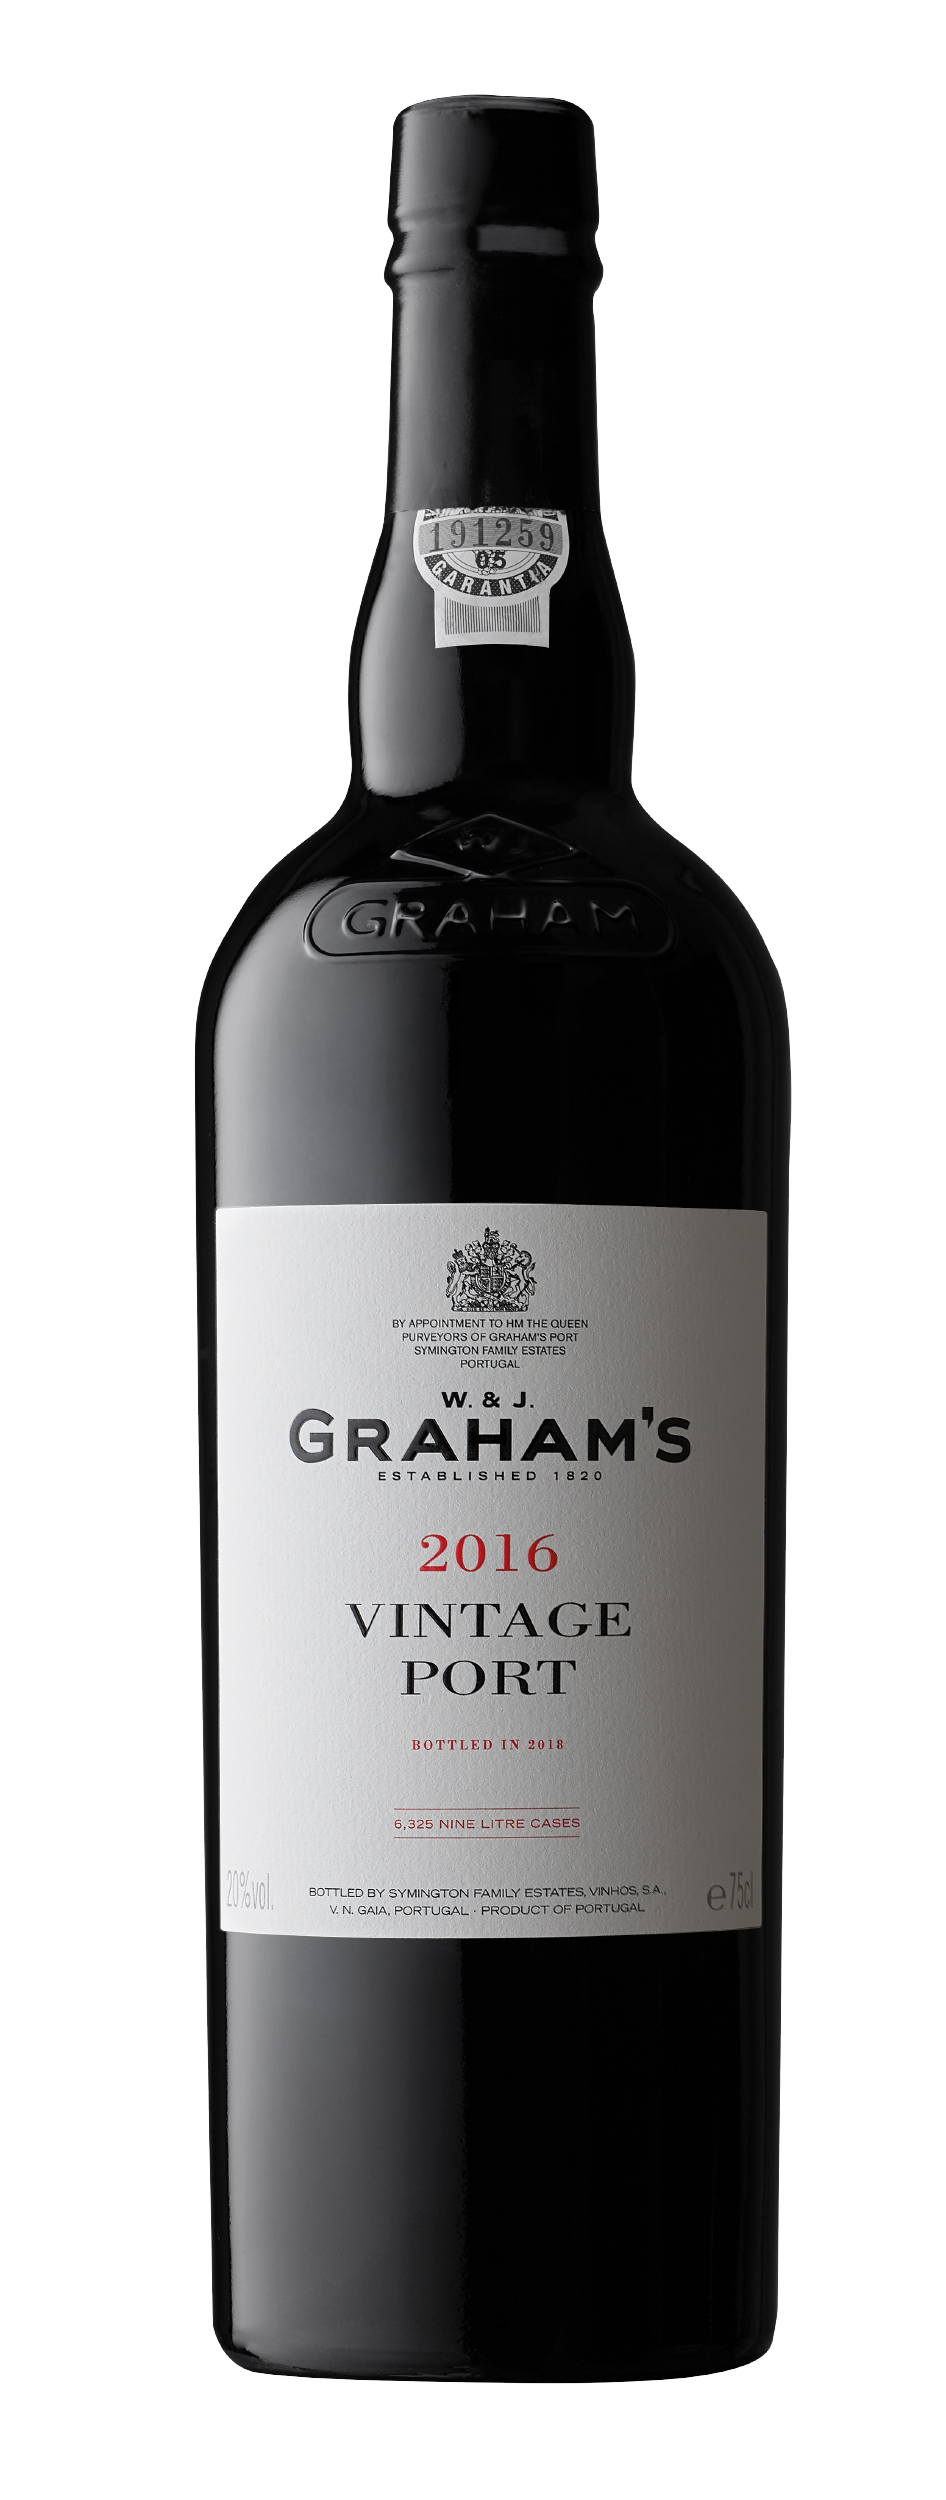 Product Image for GRAHAM'S VINTAGE PORT 2016 - DOUBLE MAGNUM